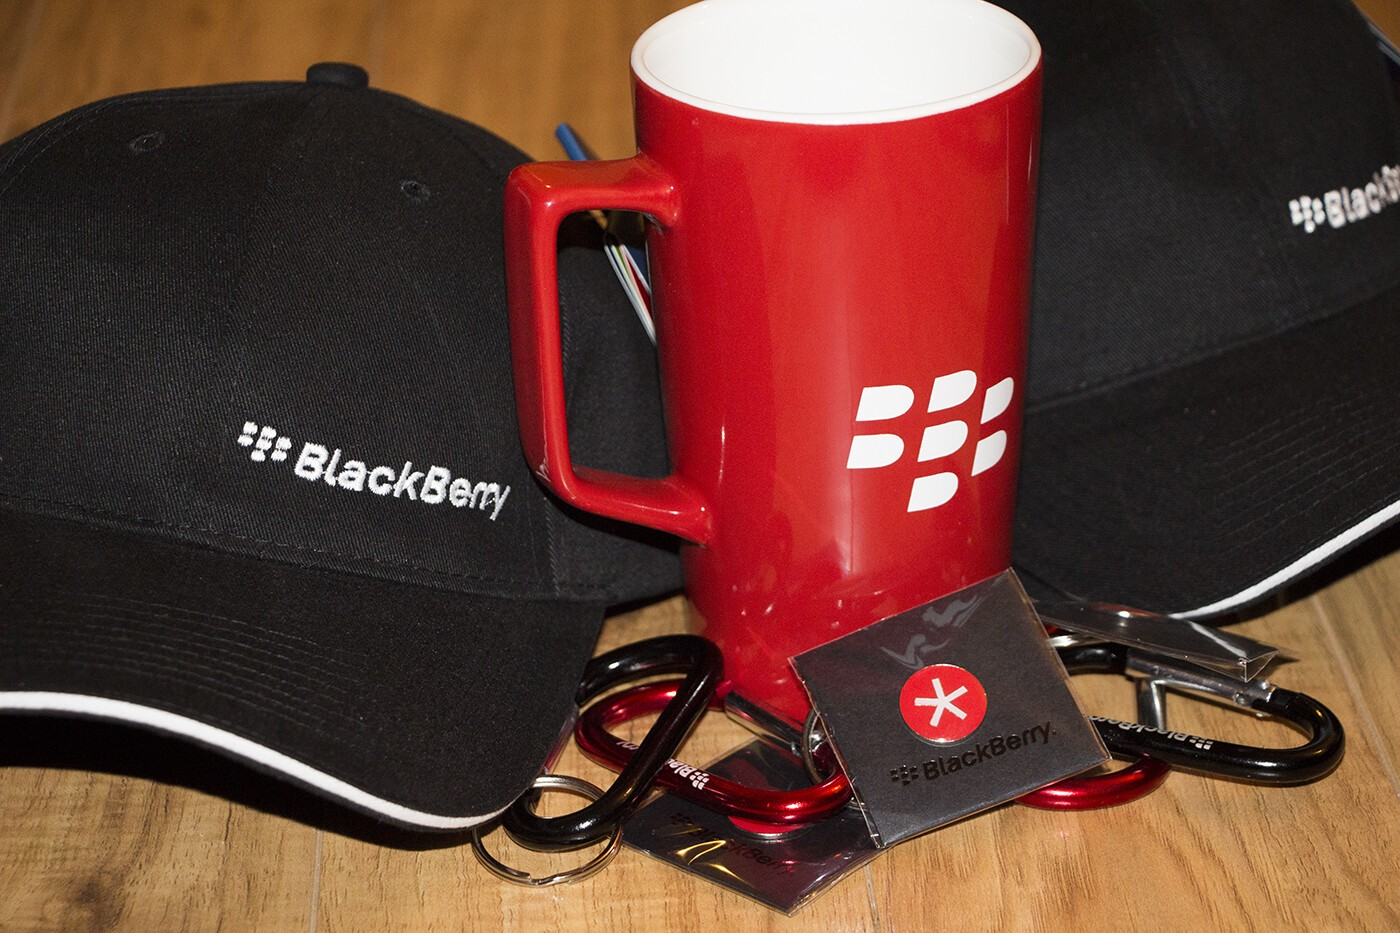 Want to win some BlackBerry goodies? Enter now to win some hats, mugs and more!